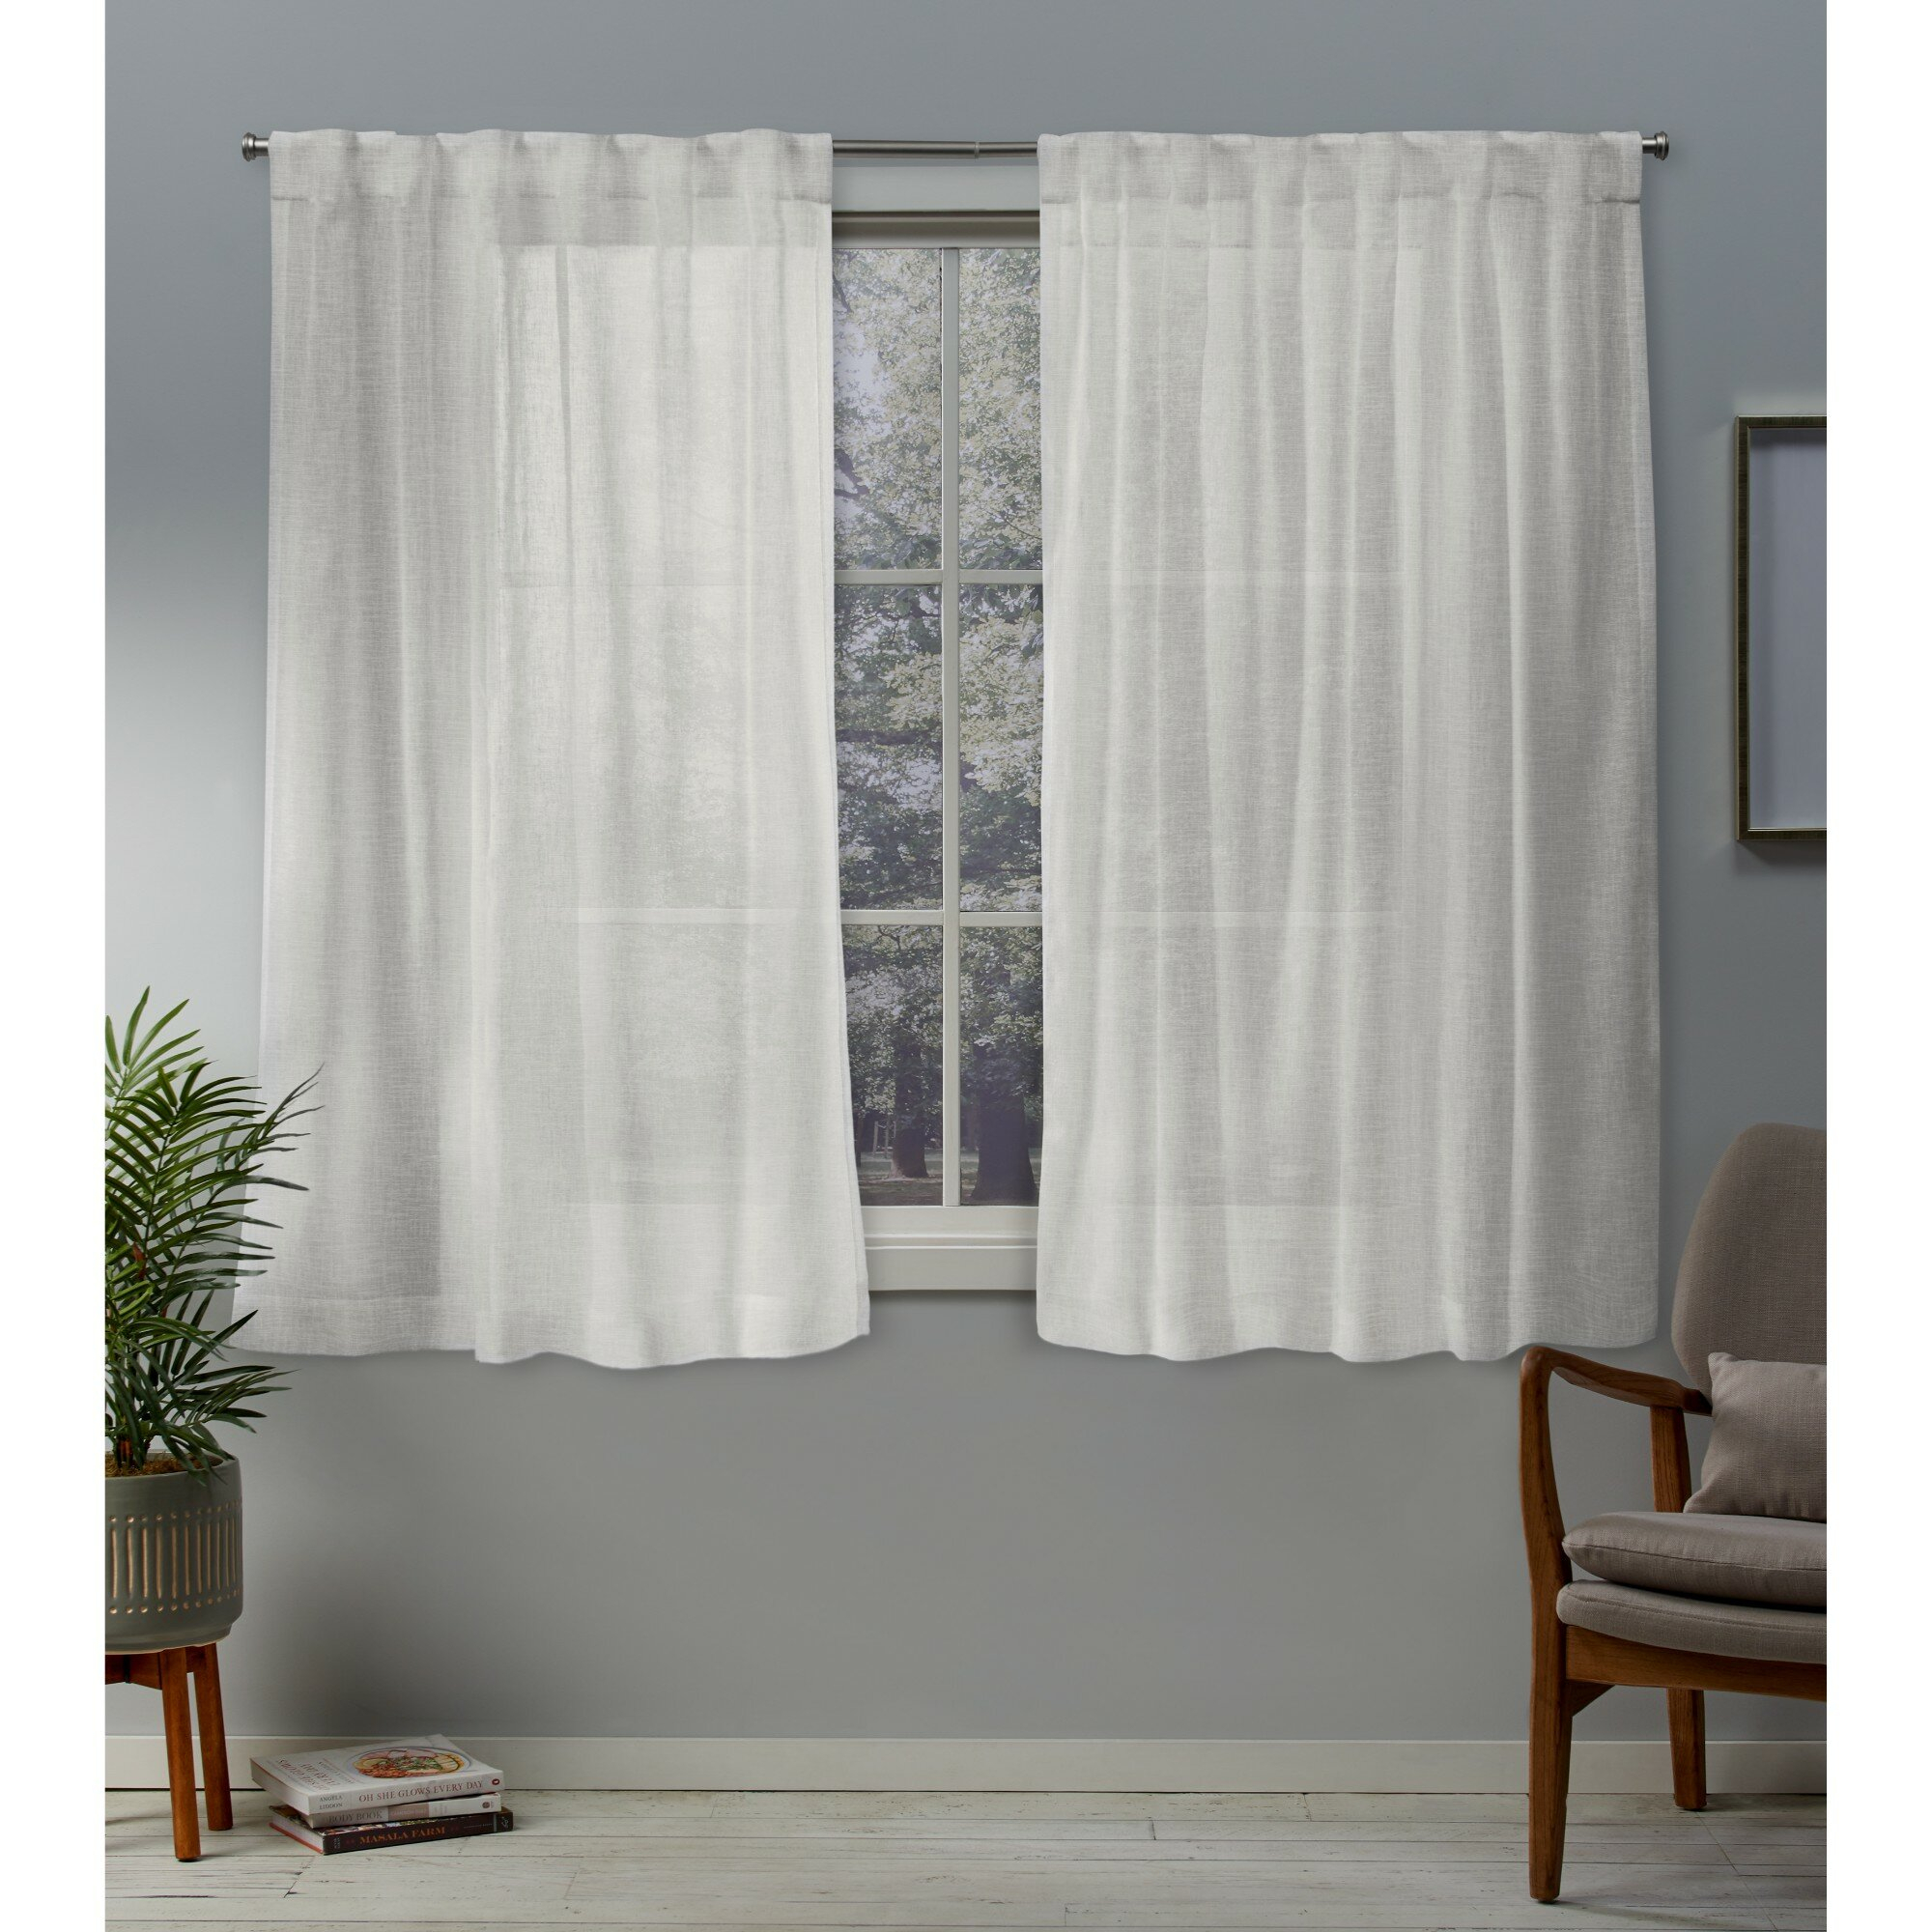 Callanan Solid Sheer Pinch Pleat Panel Pair Throughout Oakdale Textured Linen Sheer Grommet Top Curtain Panel Pairs (View 16 of 20)